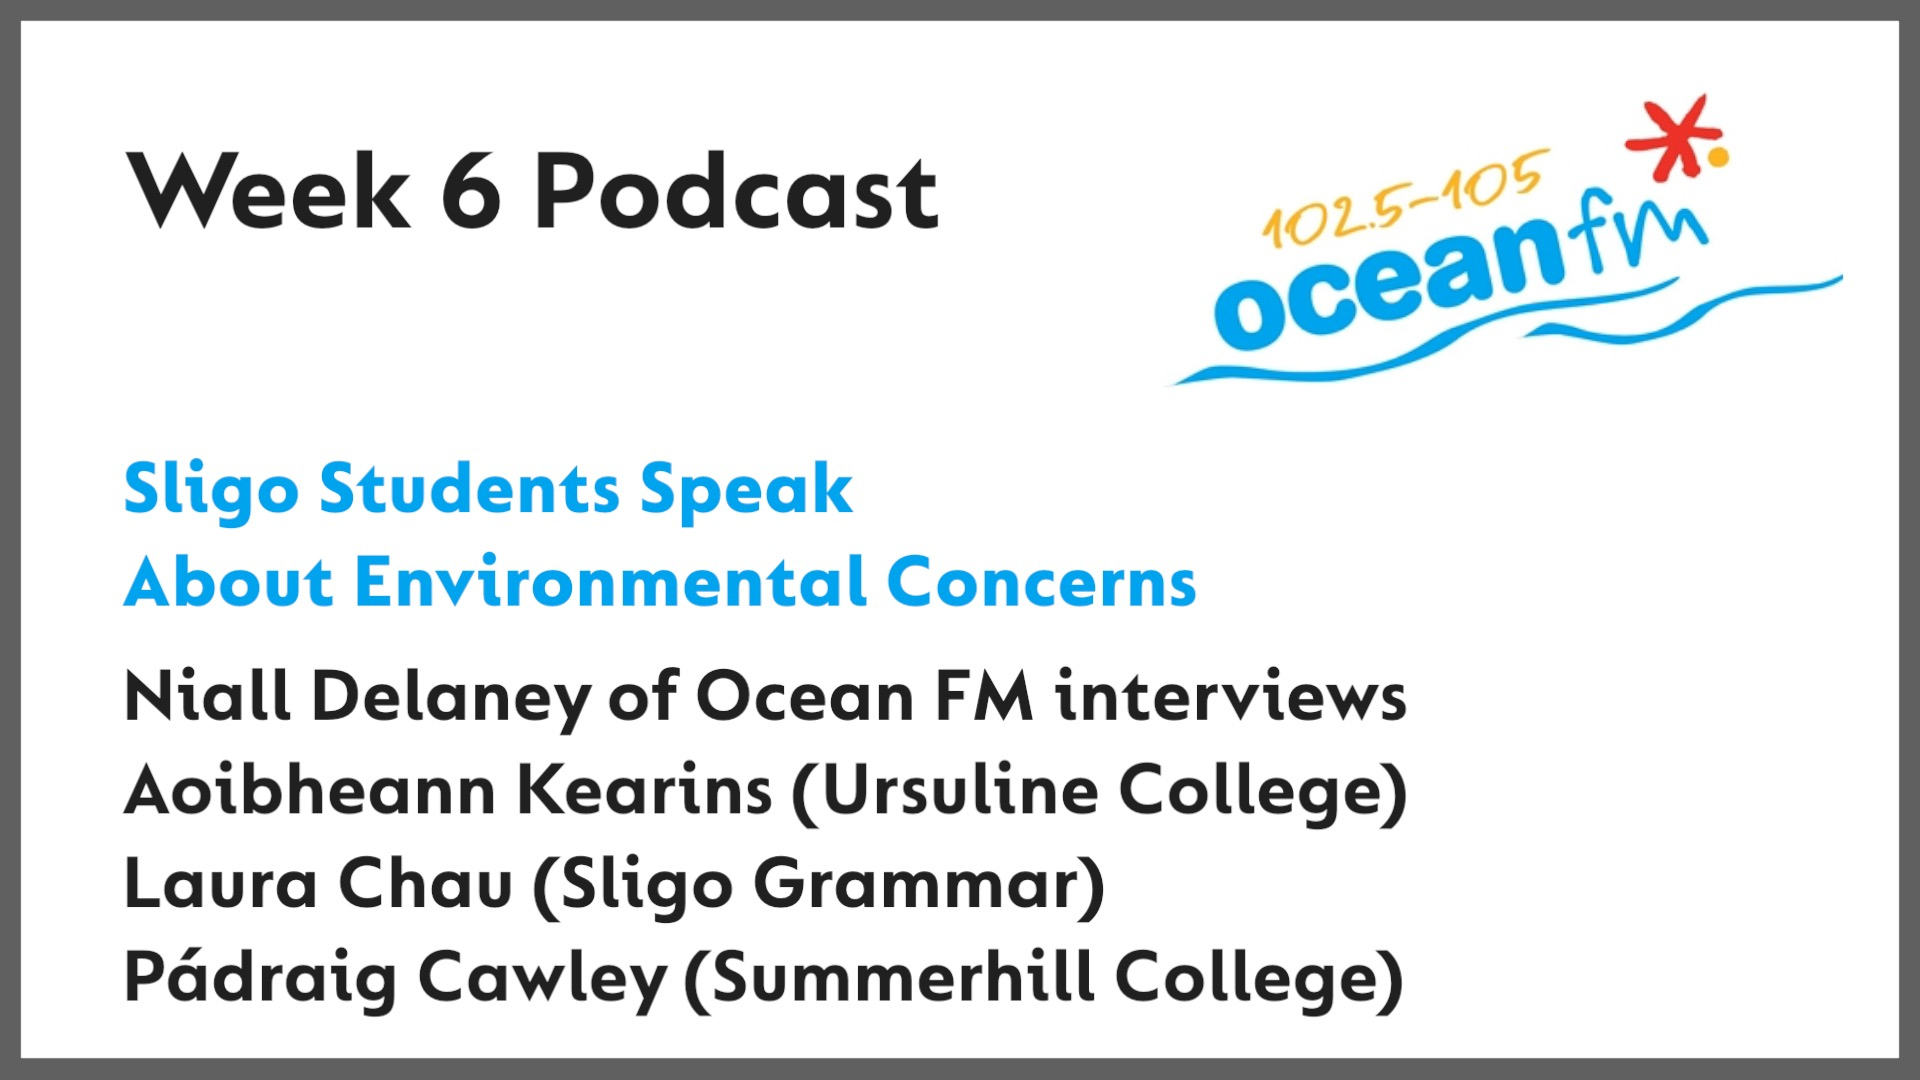 Sligo Students' Environmental Concerns - Ocean FM Interview